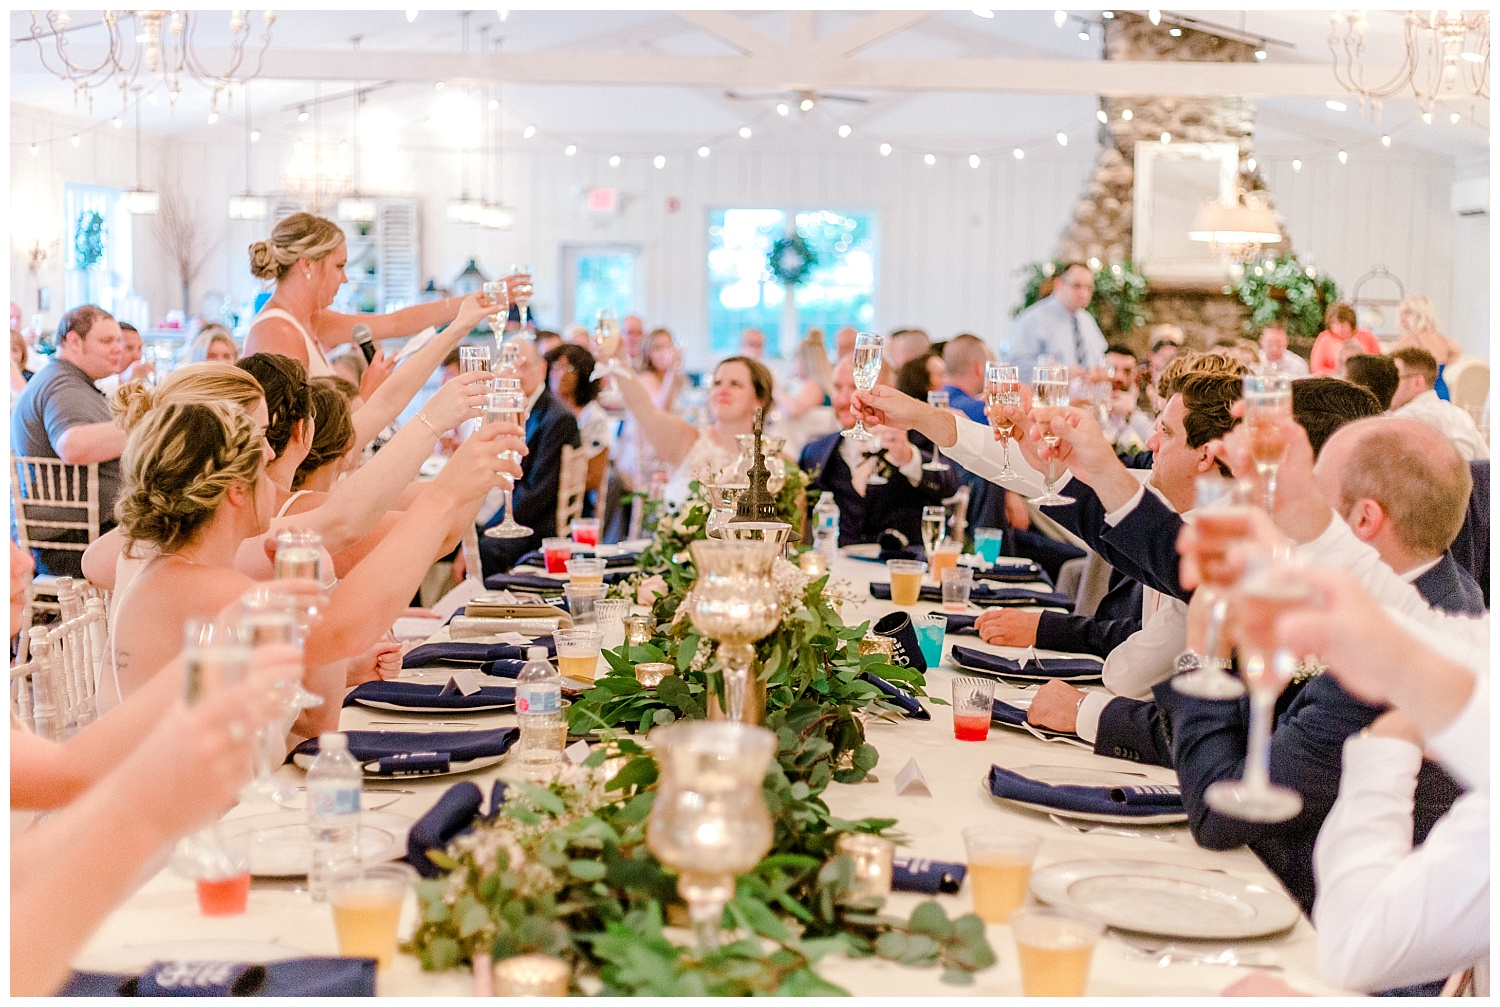 Navy and Blush pink inspired summertime whitewoods wedding in Northeastern Pennsylvania NEPA wapwallopen wedding venue by  PA based wedding and lifestyle photographer Lytle photography_0050.jpg